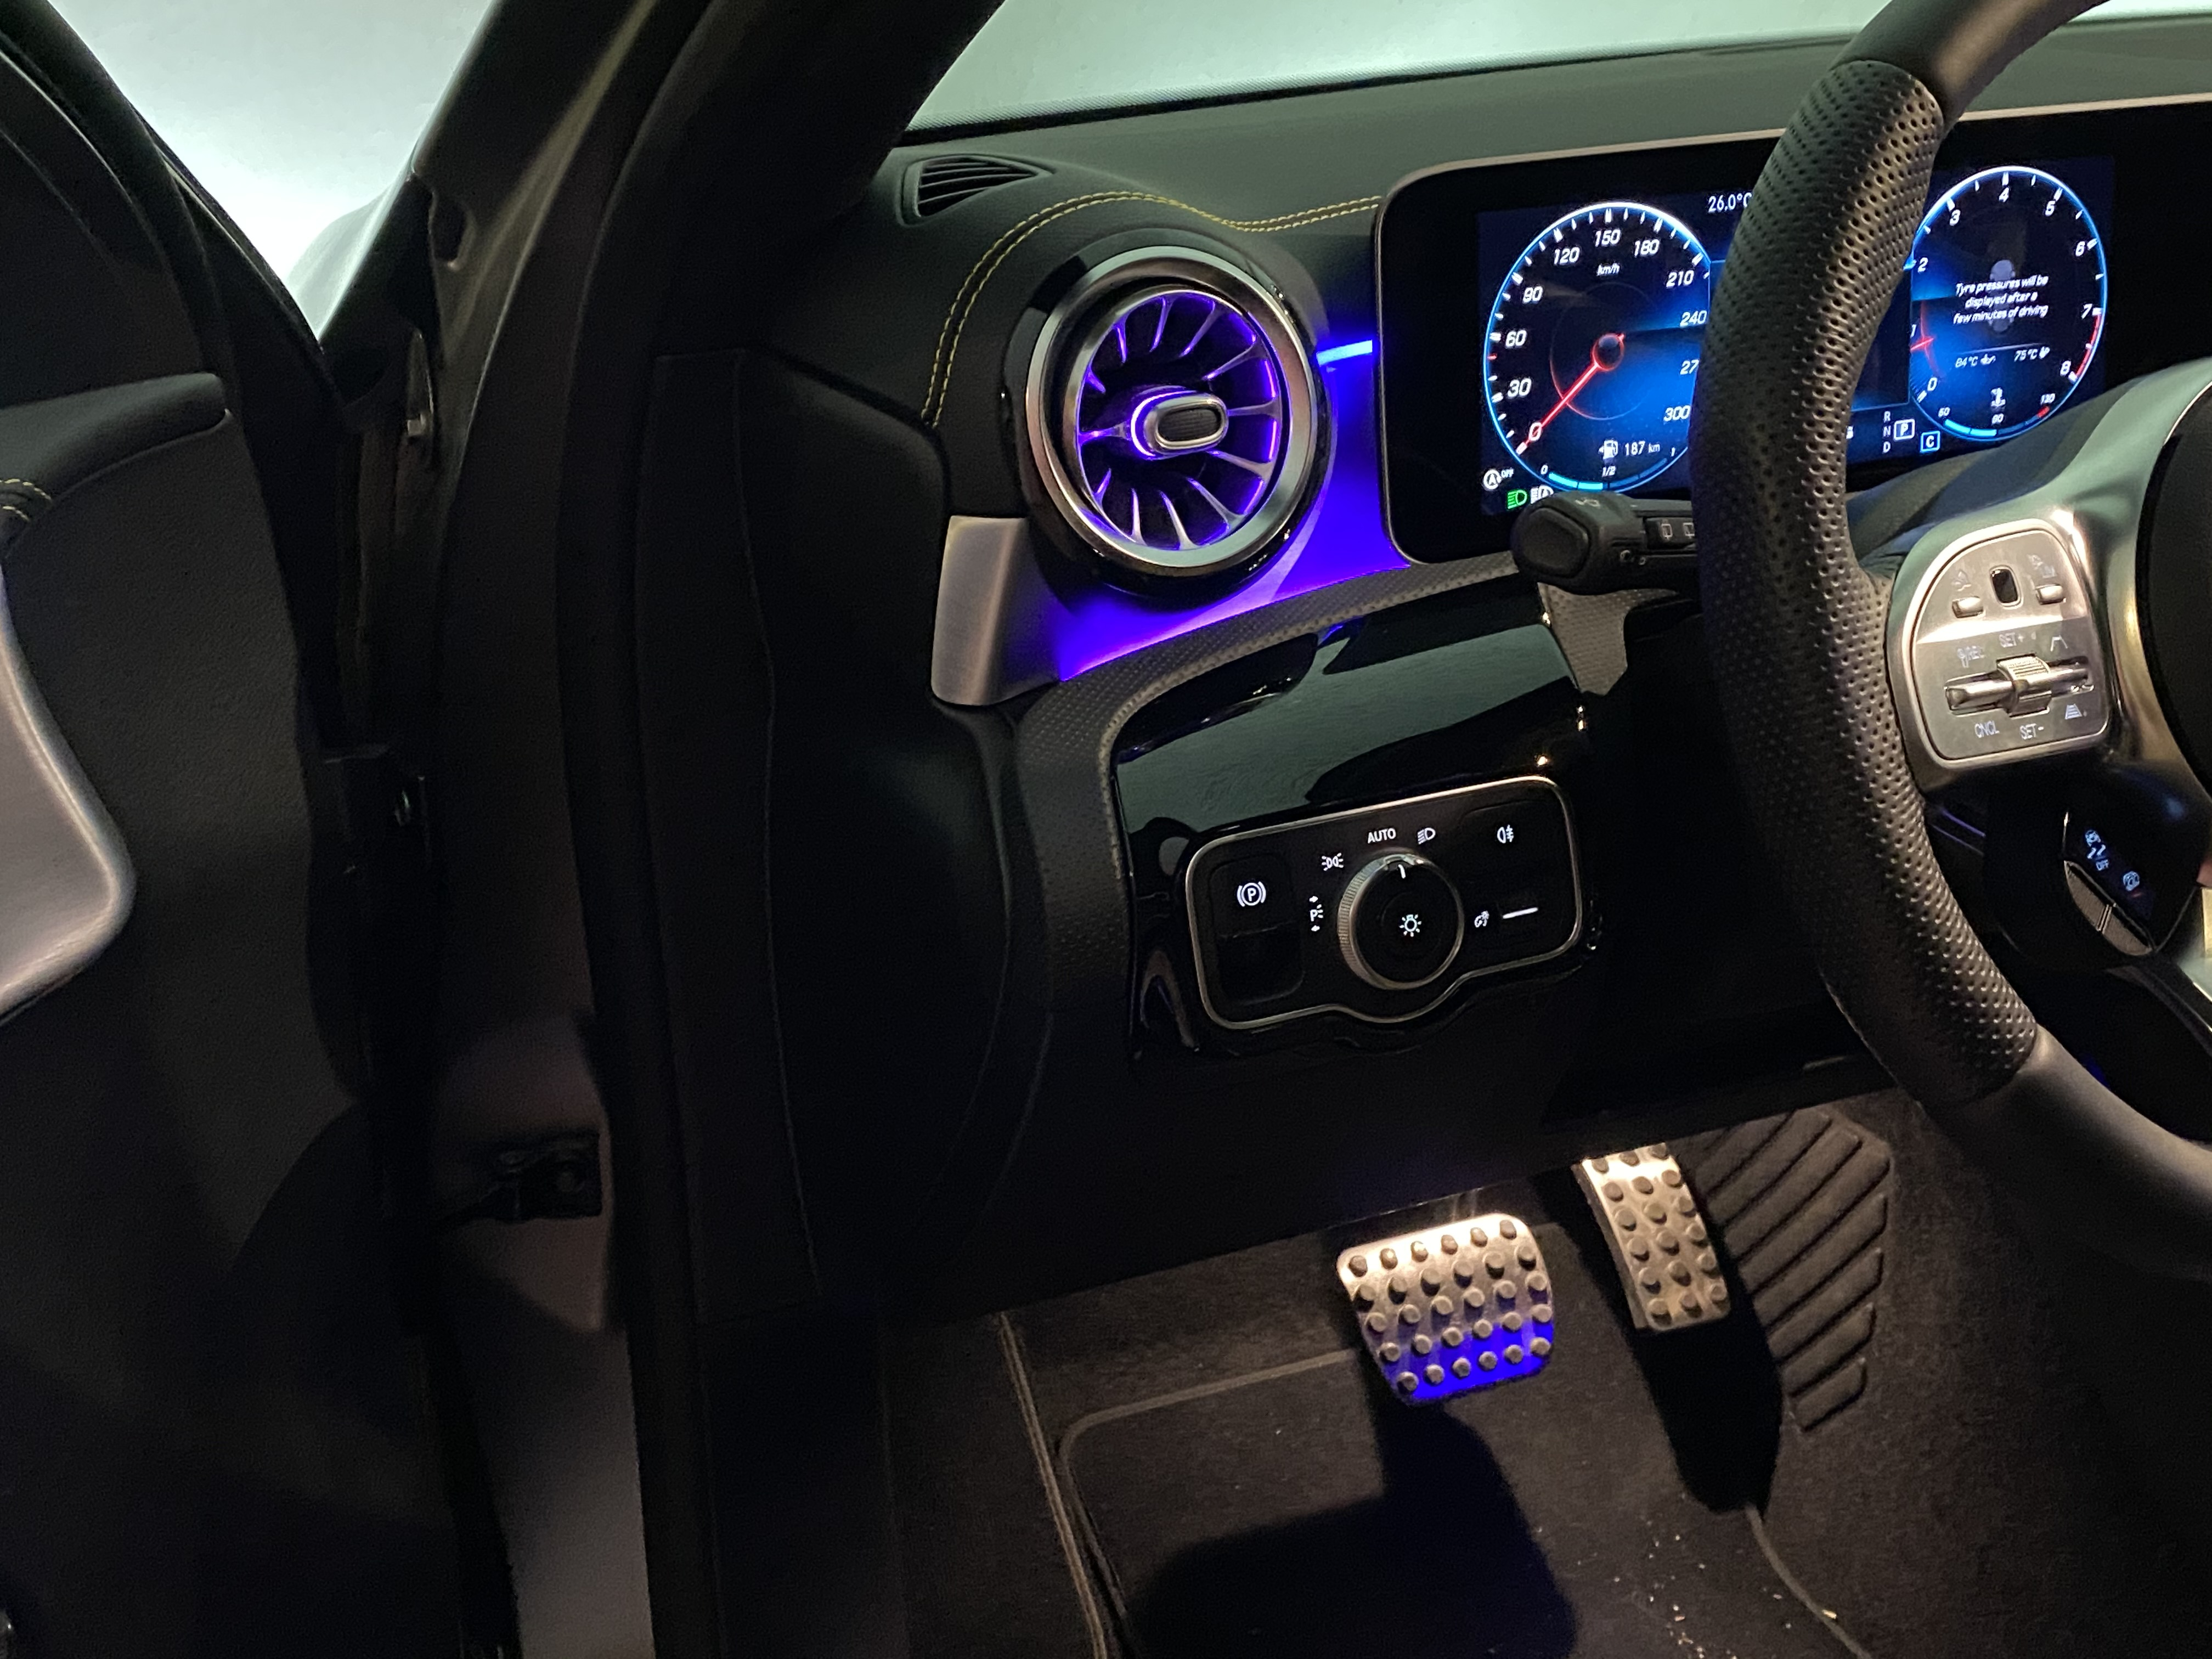 a45s_interior_front06.jpg